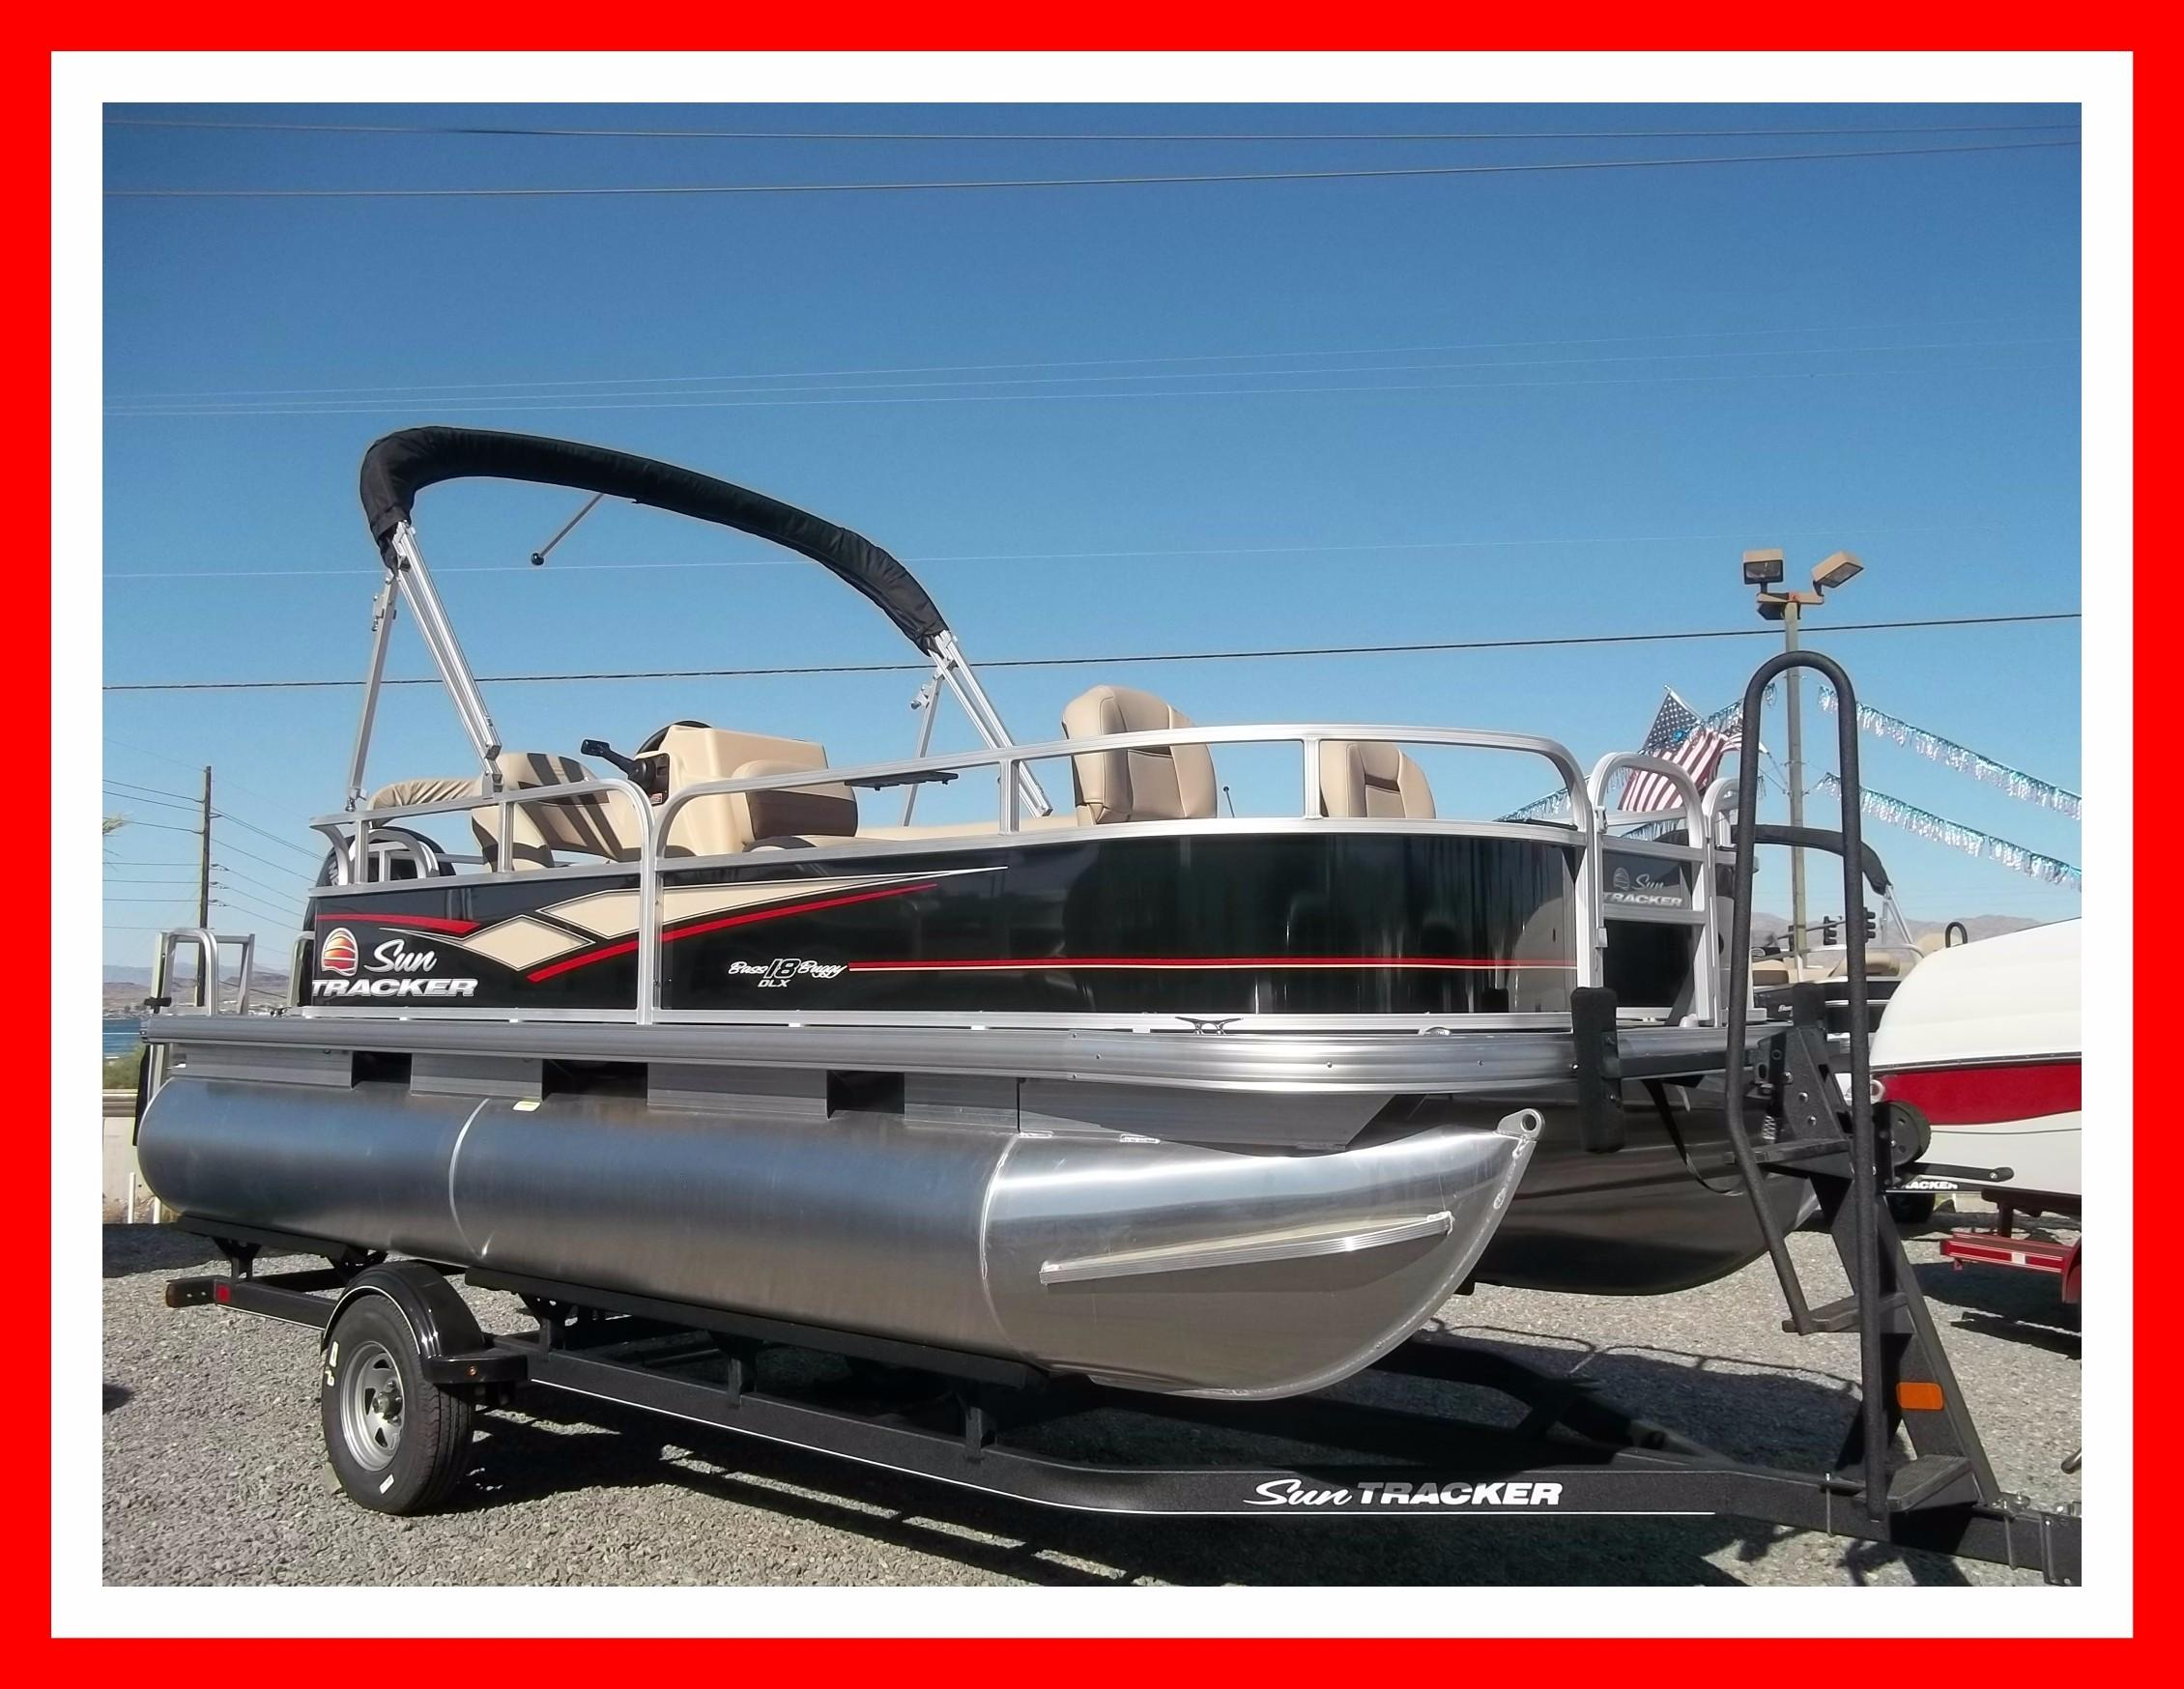 trailstar boat trailer wiring diagram bass tracker boat wiring diagram wiring diagram   elsalvadorla Trailstar Boat Trailer Specs Trailstar Boat Trailers Specifications